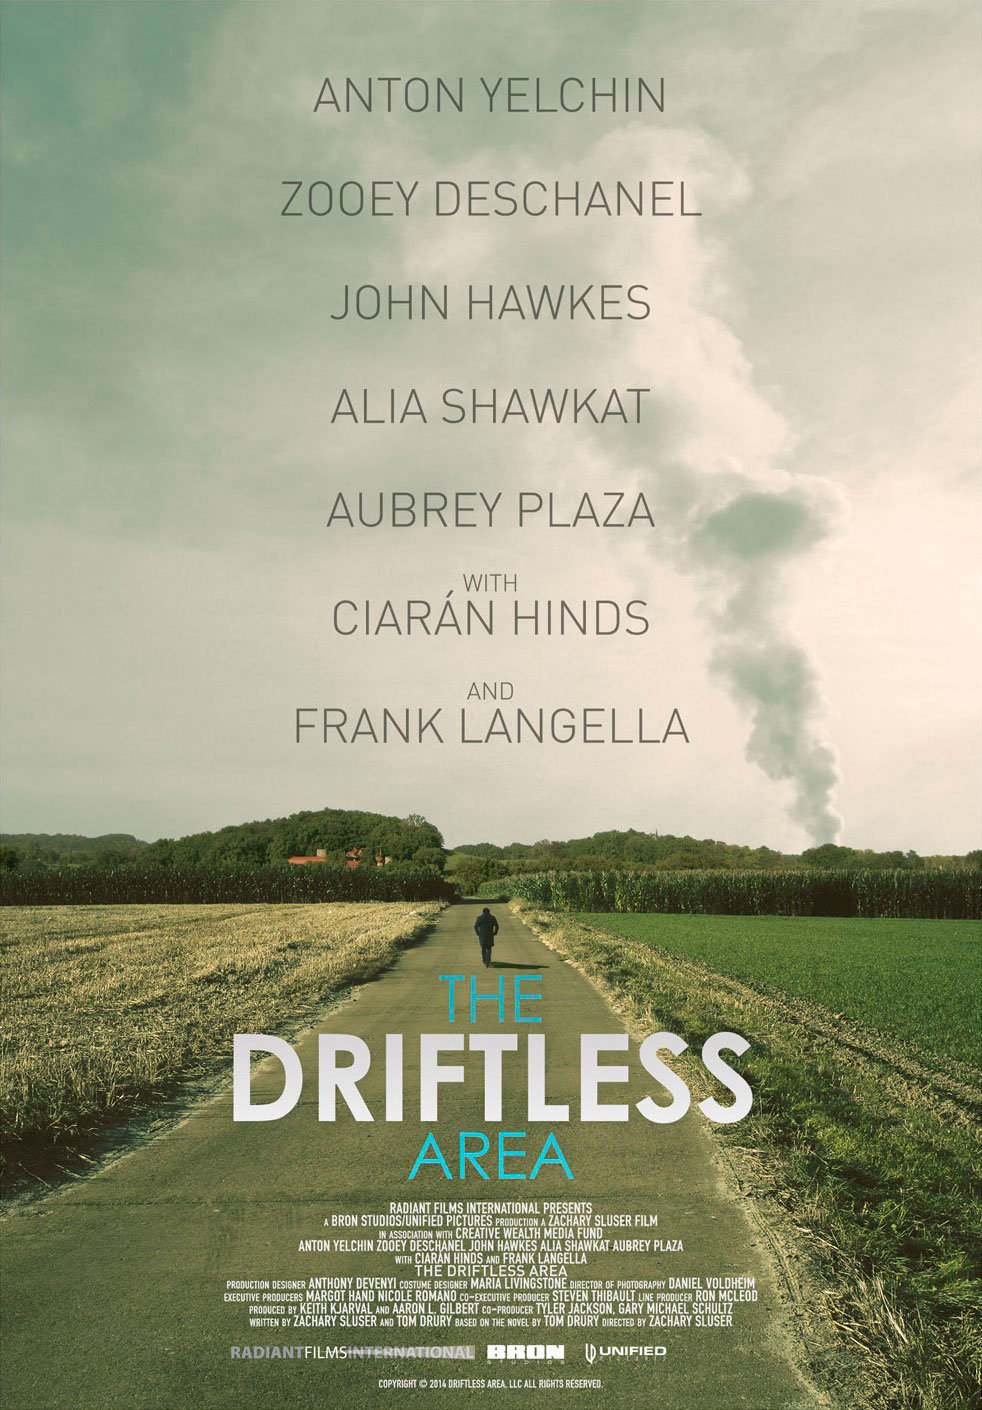 the-drifltess-area-poster